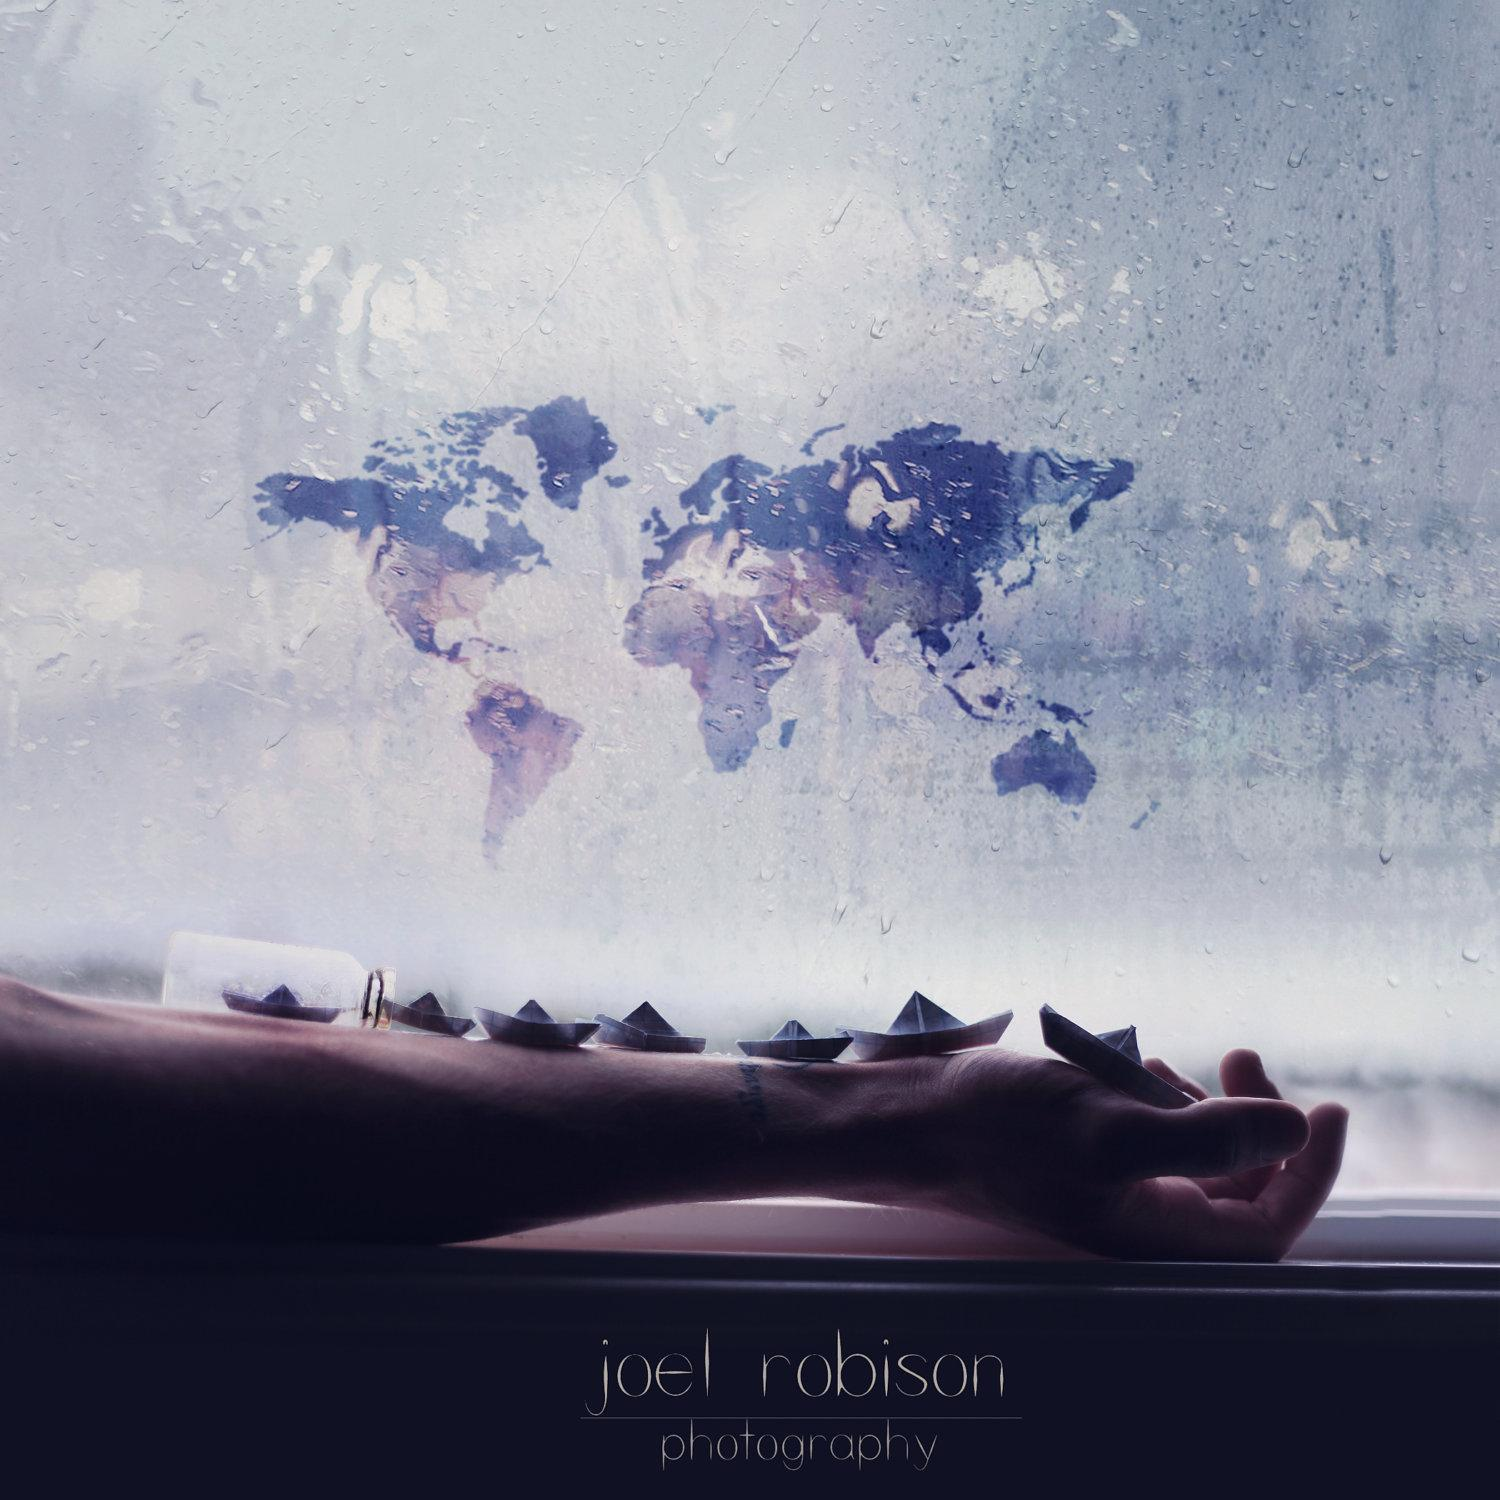 joel-robinson-usa-window